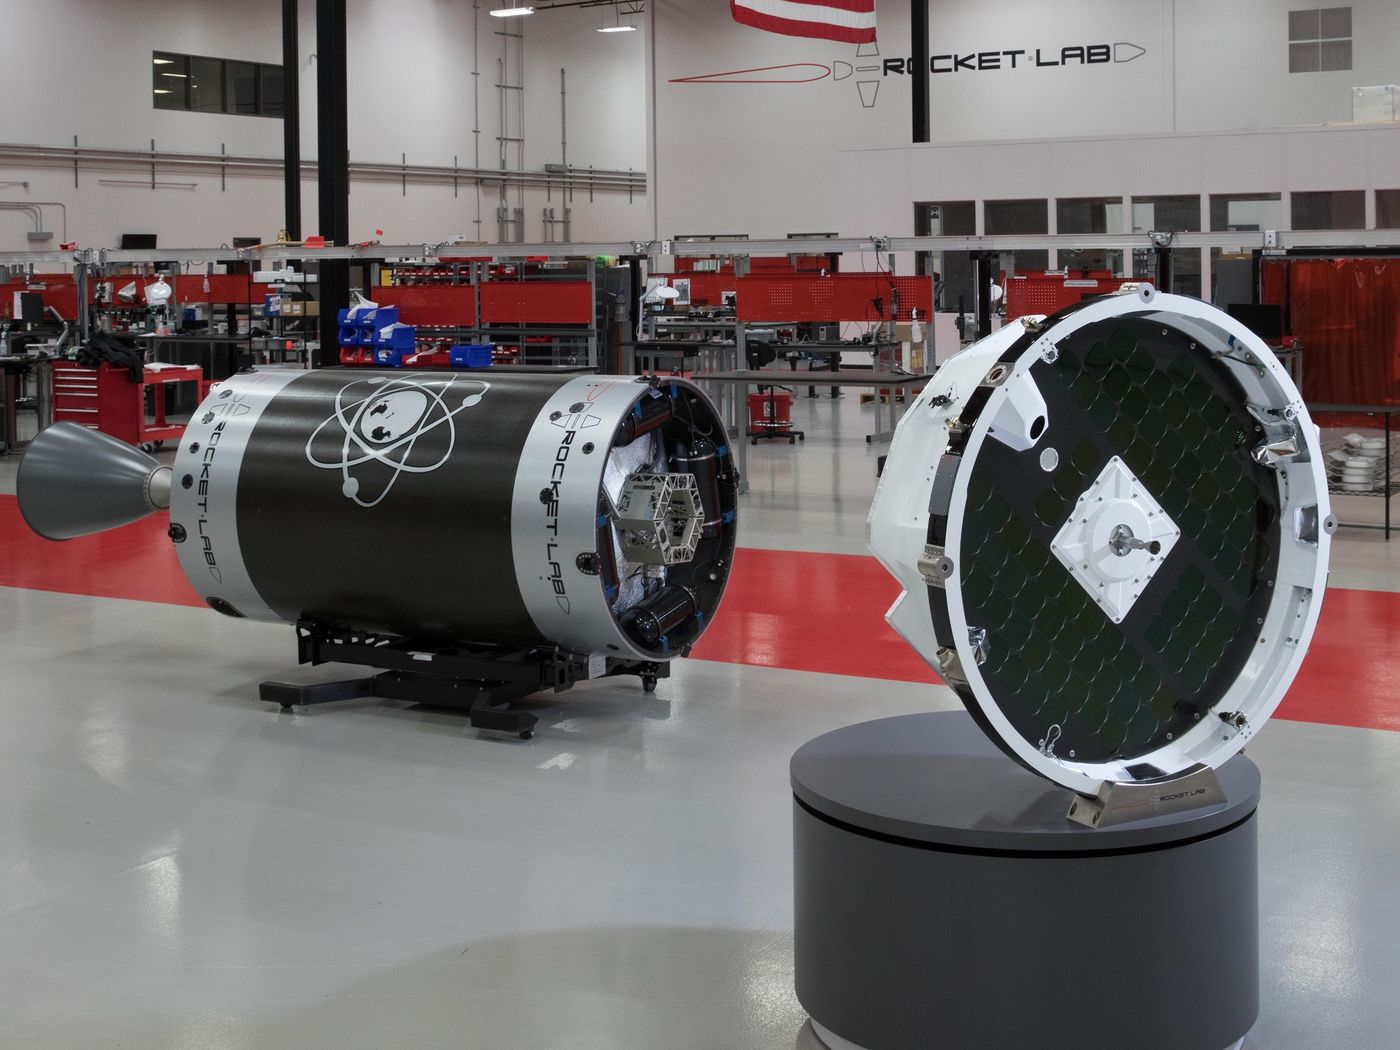 Rocket Lab is now building customizable satellites - The Verge